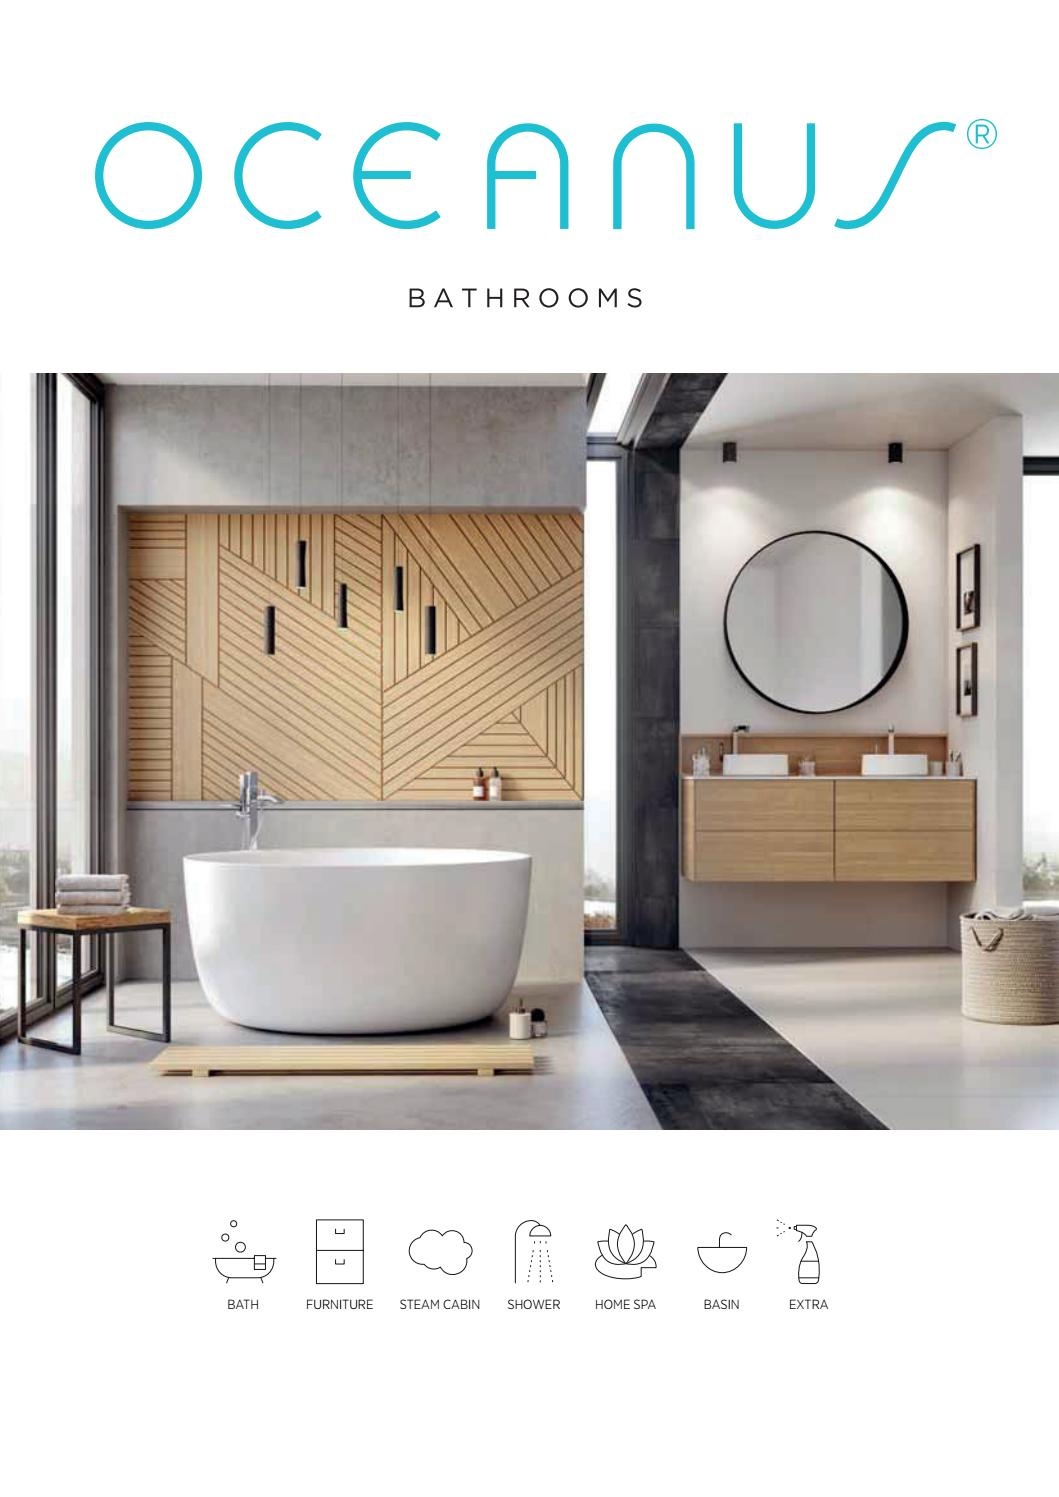 Badezimmer Set Novel Oceanus Bathrooms By Oceanus Ag Issuu